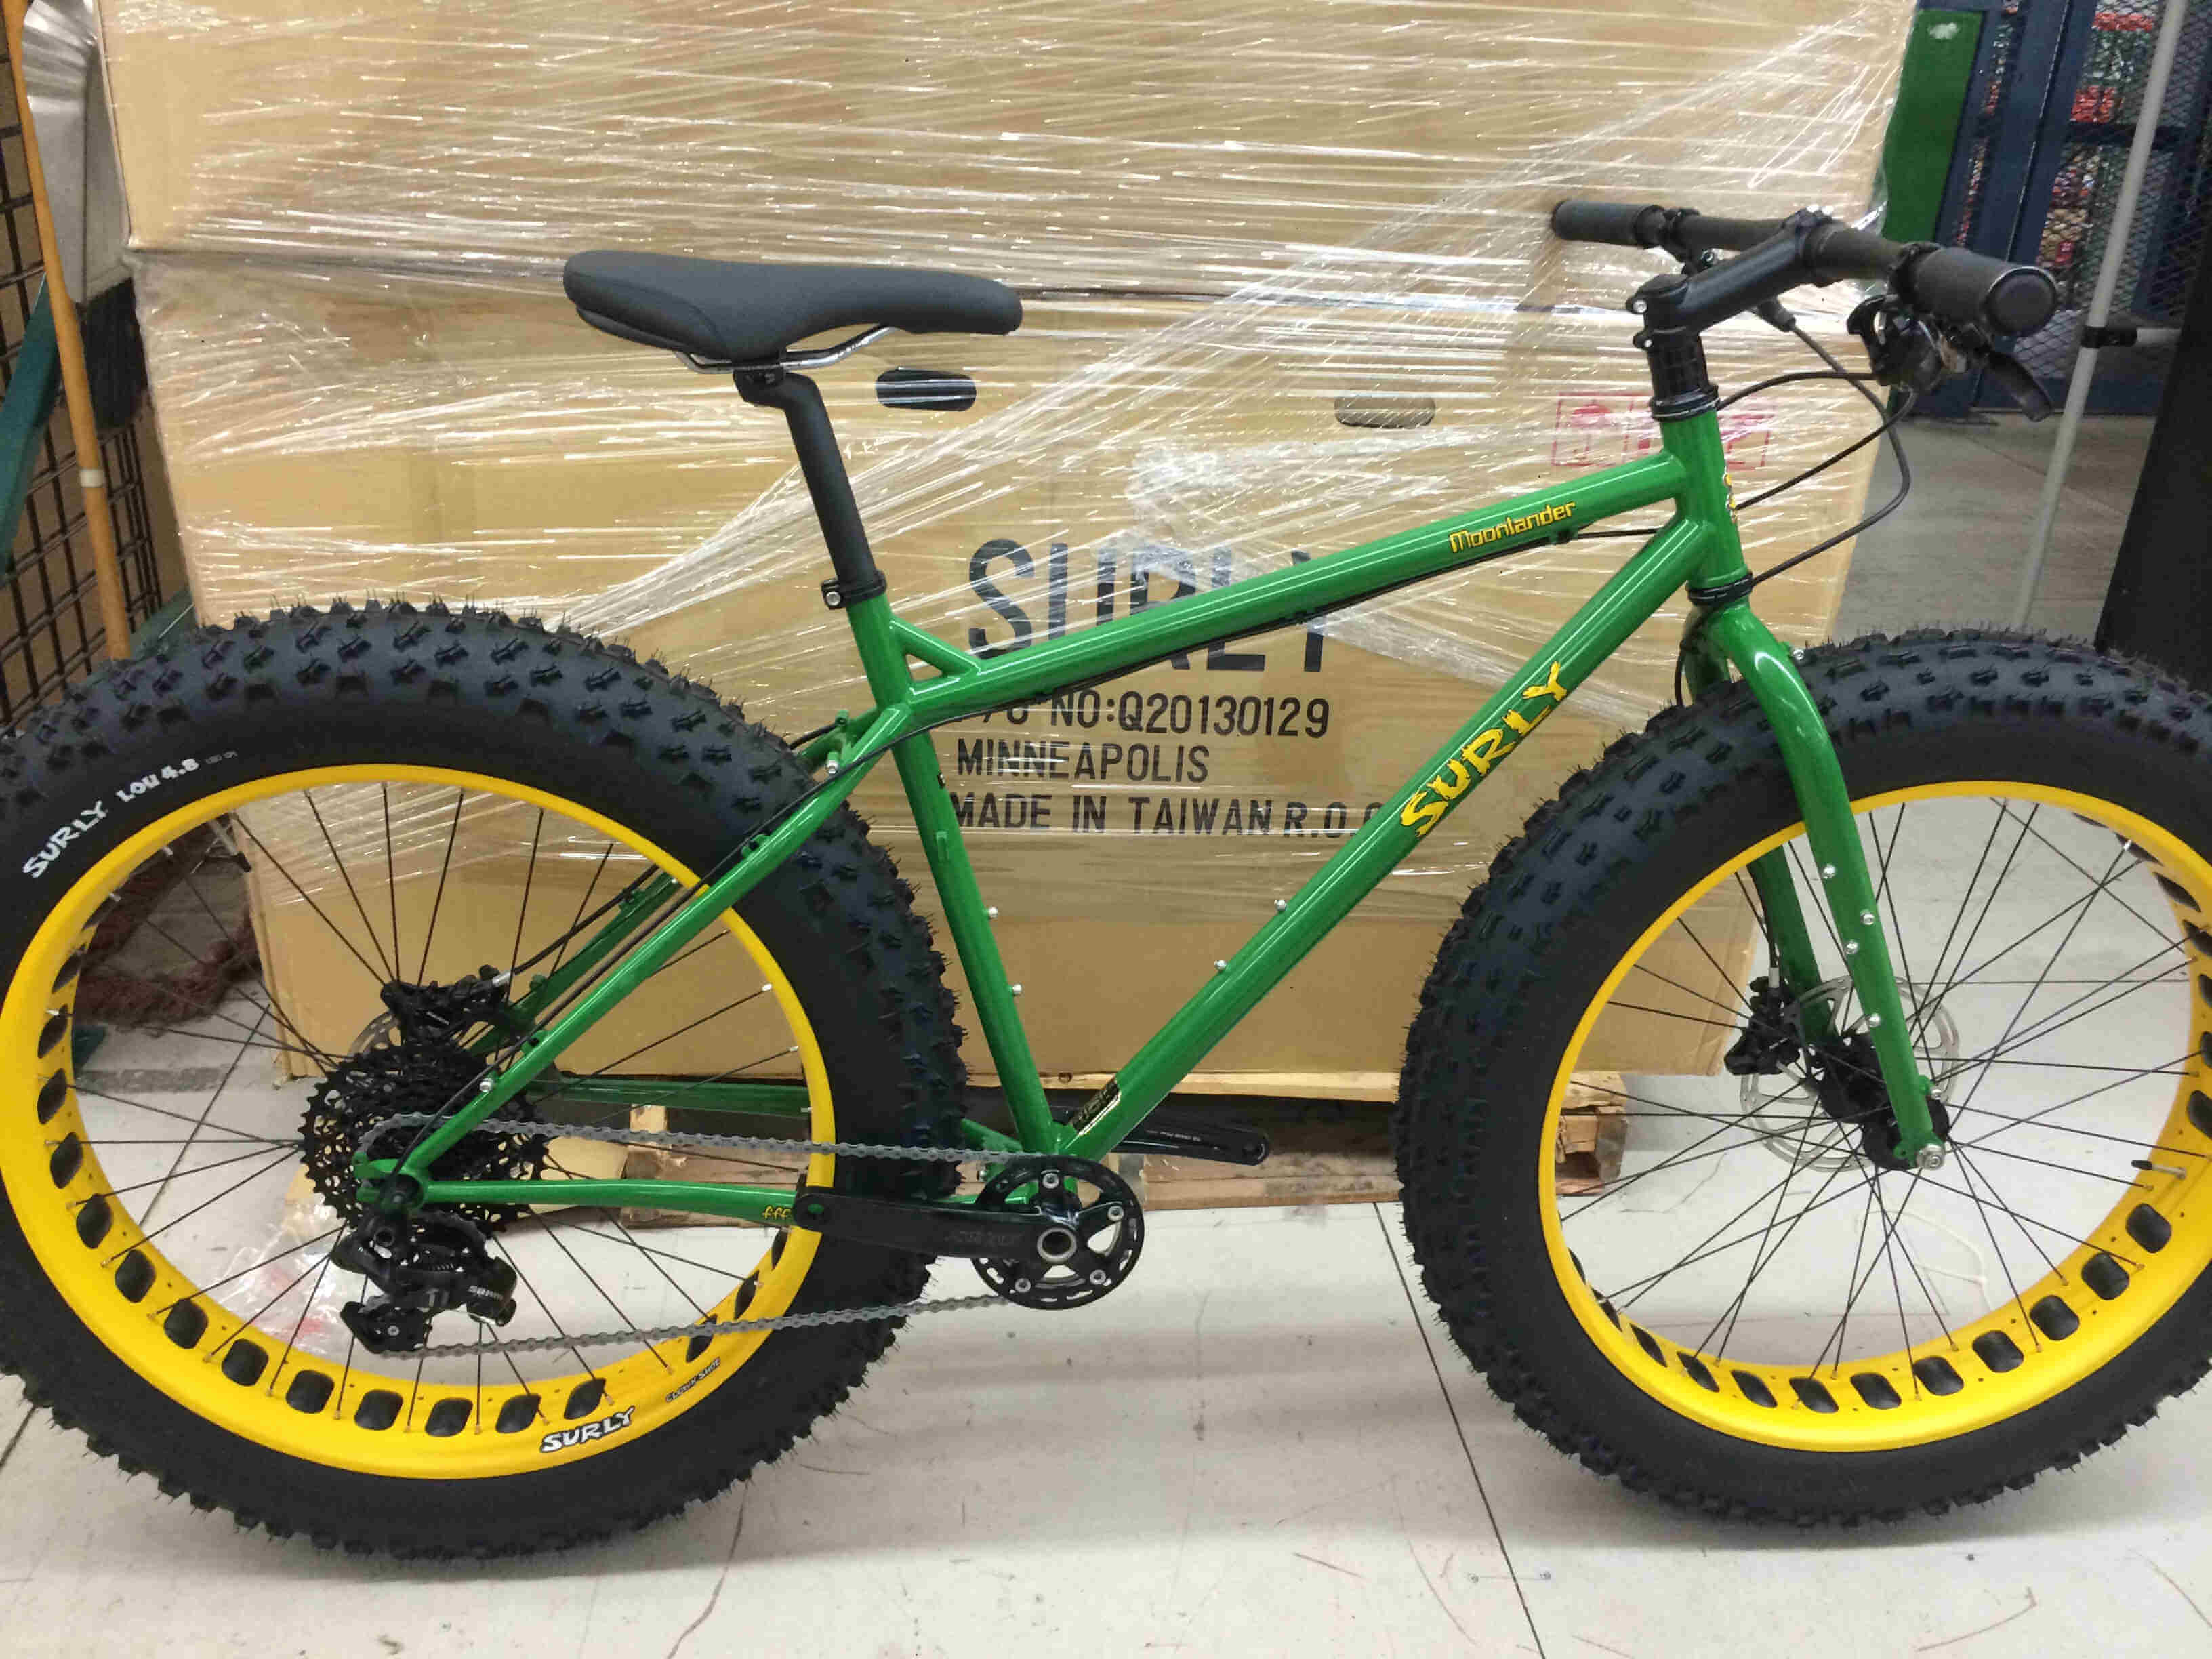 Right side view green Surly Moonlander fat bike, parked against a pallet of cardboard boxes, on a concrete floor